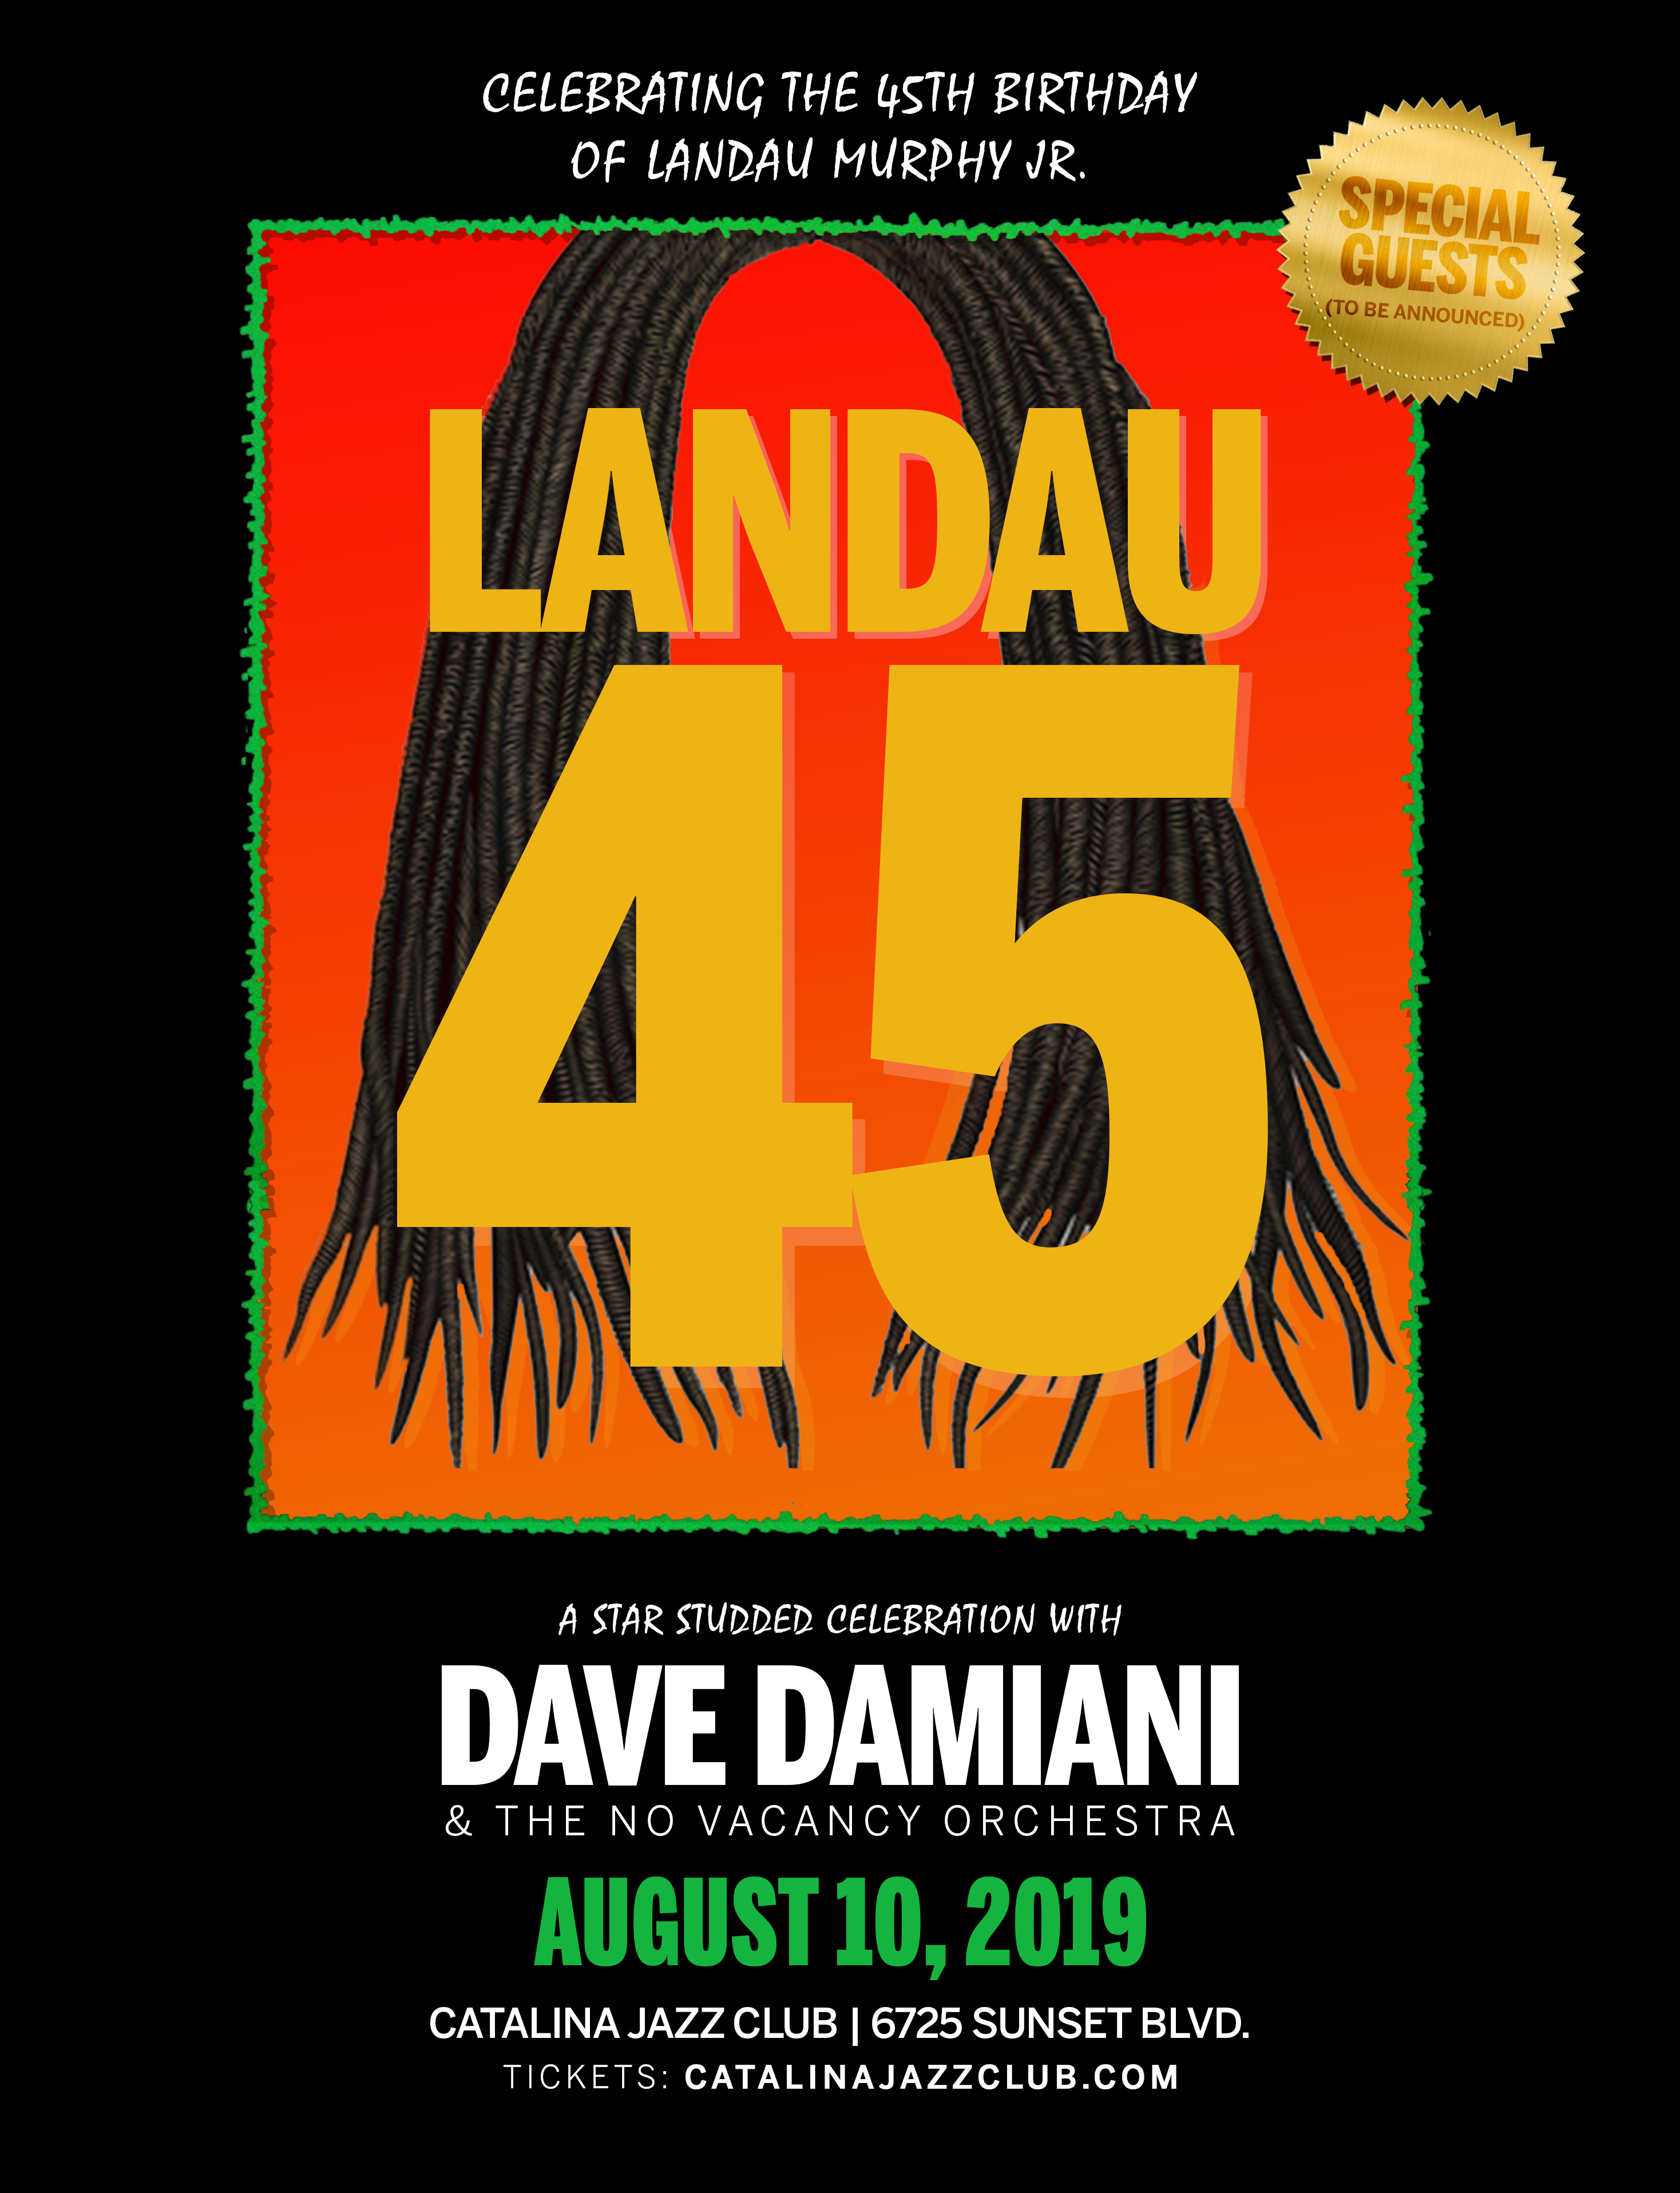 Landau 45 - w/ Dave Damiani & The No Vacancy Orchestra